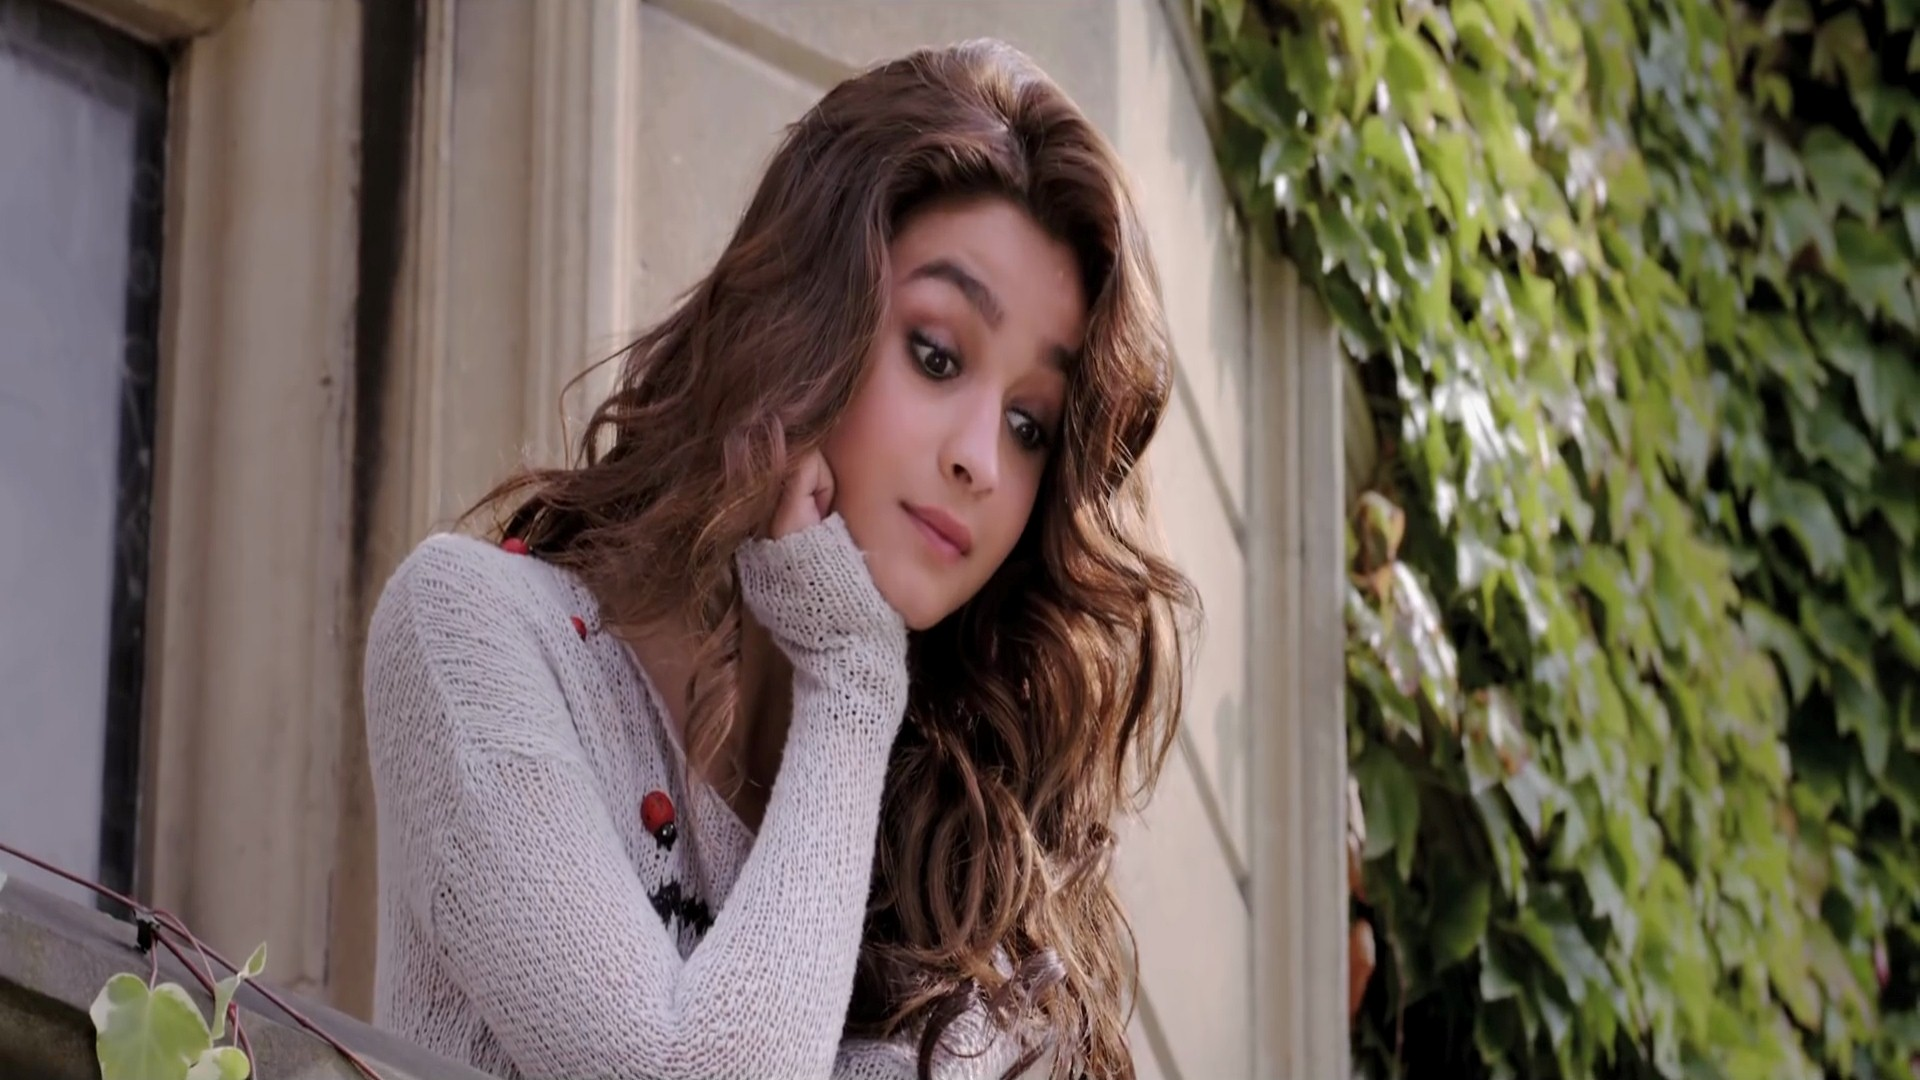 Amazing Alia Bhatt Look Download Mobile Free Hd Pictures